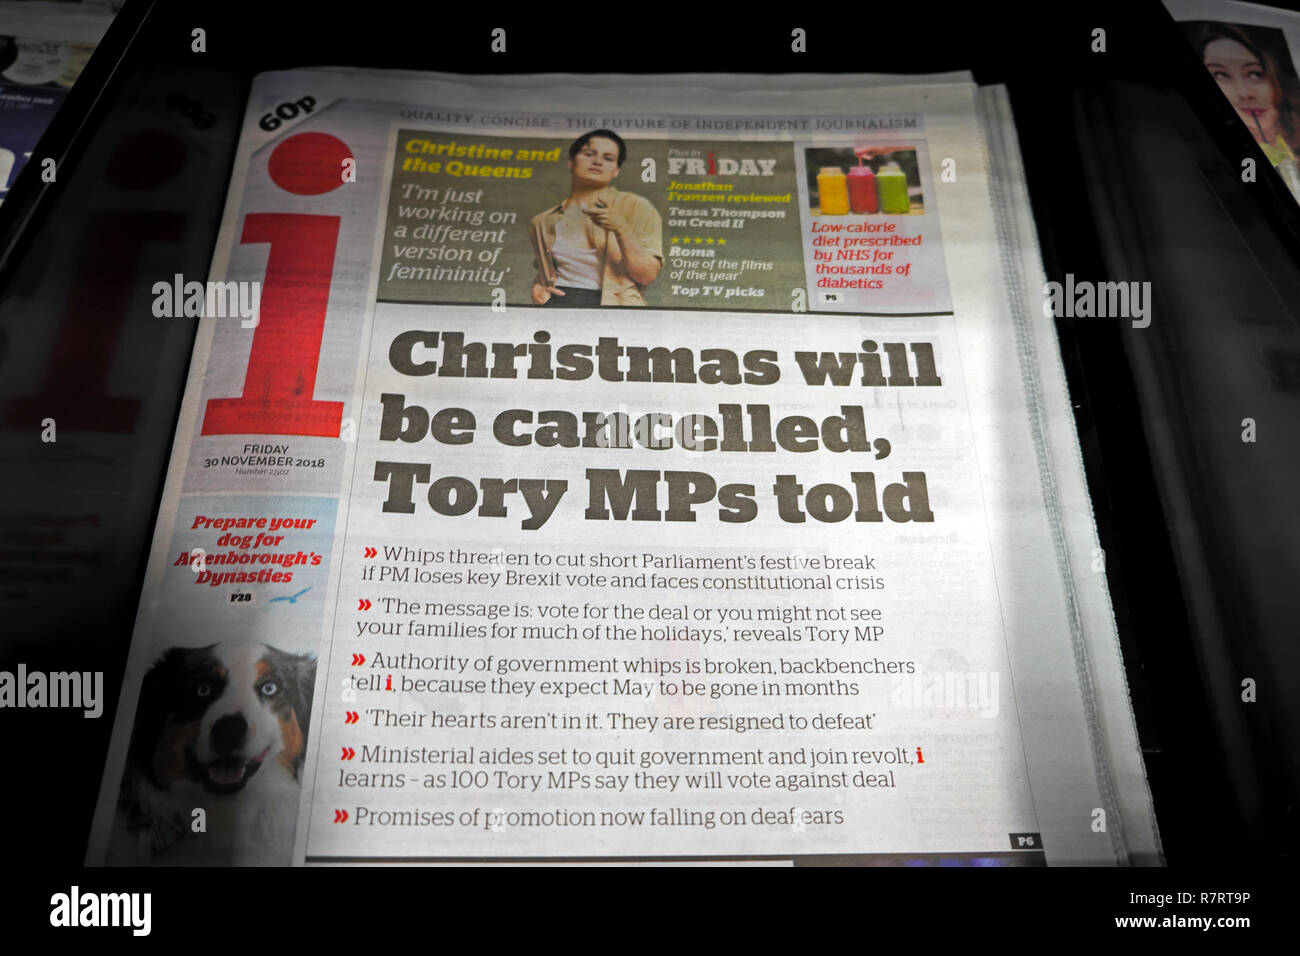 """i newspaper Independent front page Brexit headline """"Christmas will be cancelled, Tory MP's told"""" newspaper on a newsstand 30 November 2018 London UK Stock Photo"""